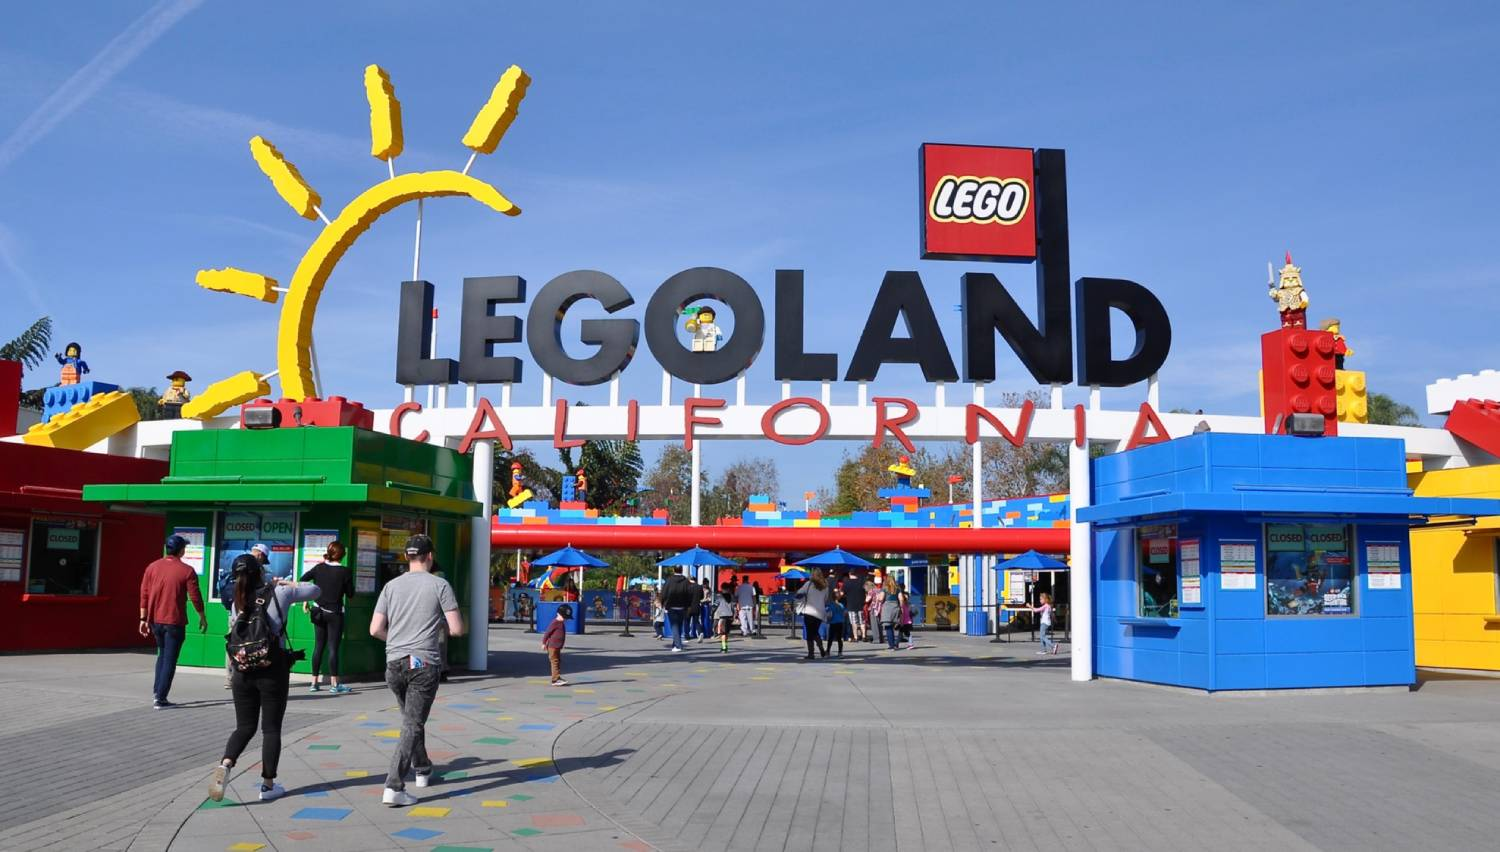 Legoland California - Things To Do In San Diego